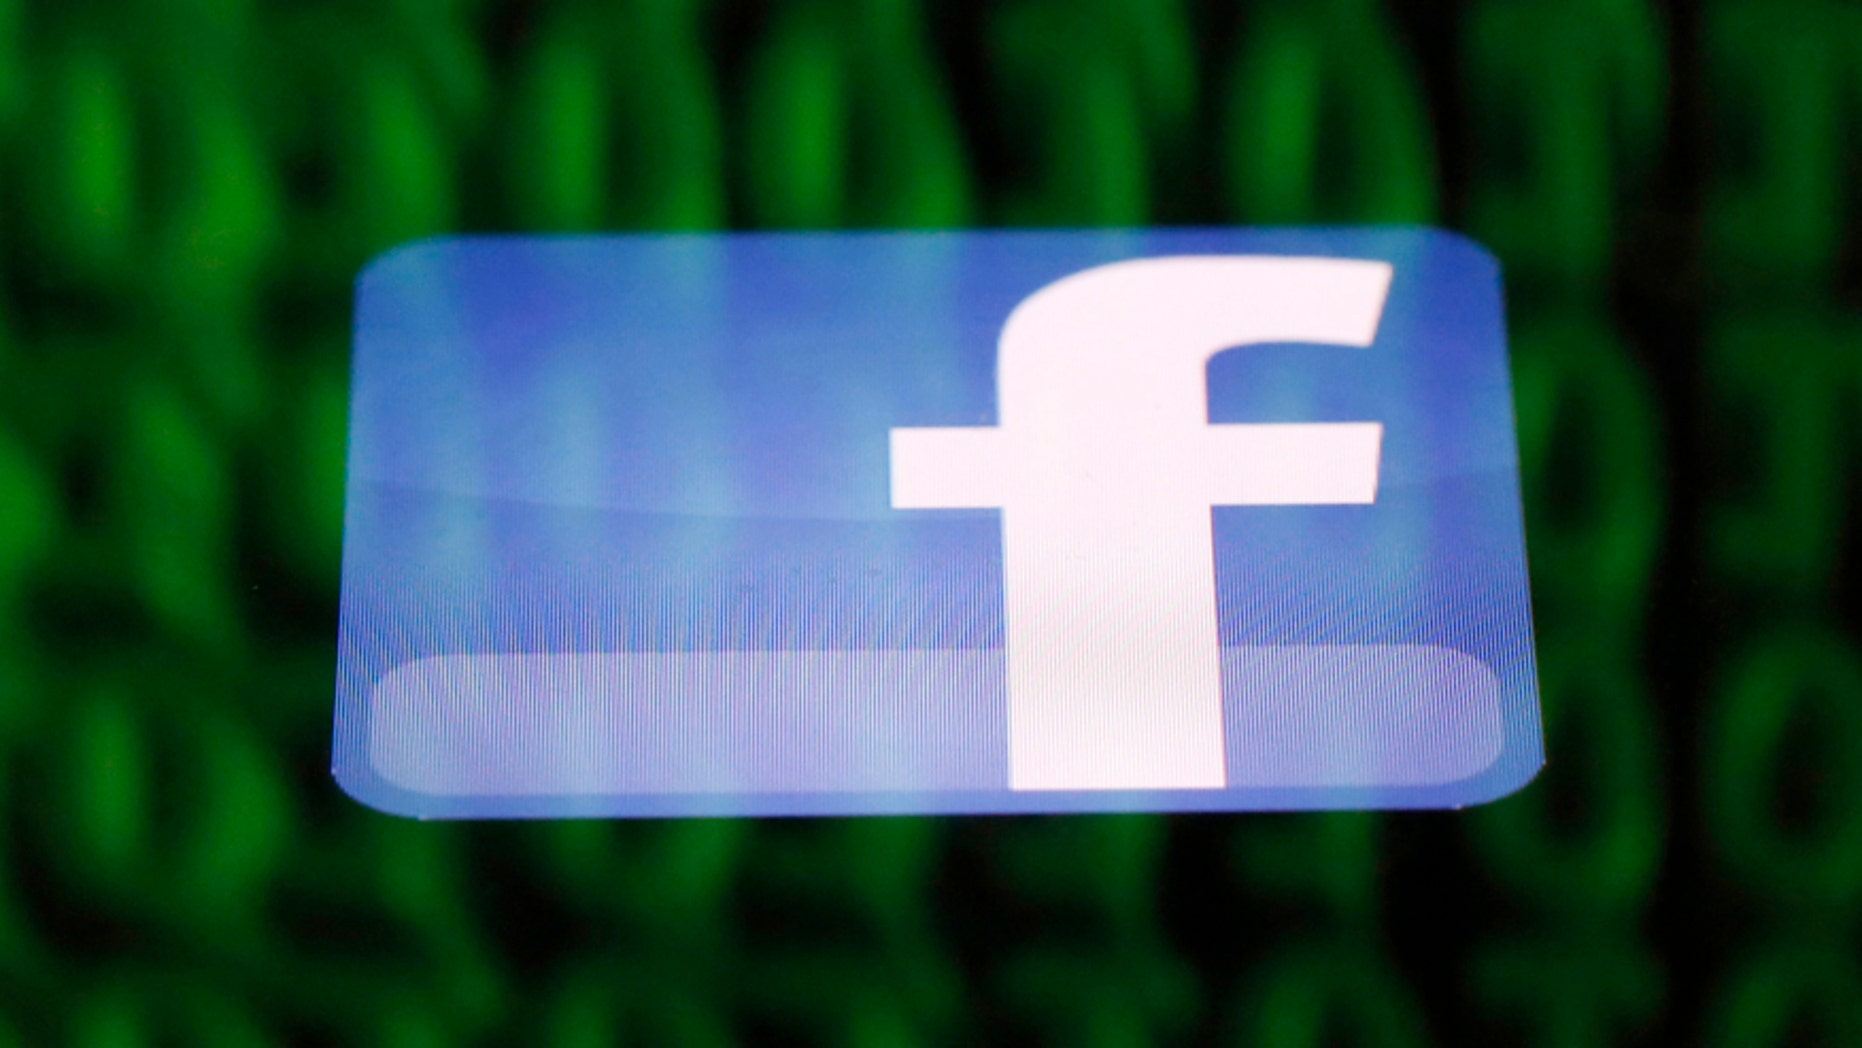 A Facebook logo on an Ipad is reflected among source code on the LCD screen of a computer, in this photo illustration taken in Sarajevo June 18, 2014.  Ireland's High Court on Wednesday asked the European Court of Justice (ECJ) to review a European Union-U.S. data protection agreement in light of allegations that Facebook shared data from EU users with the U.S. National Security Agency.   REUTERS/Dado Ruvic  (BOSNIA AND HERZEGOVINA - Tags: CRIME LAW BUSINESS POLITICS) - RTR3UH34